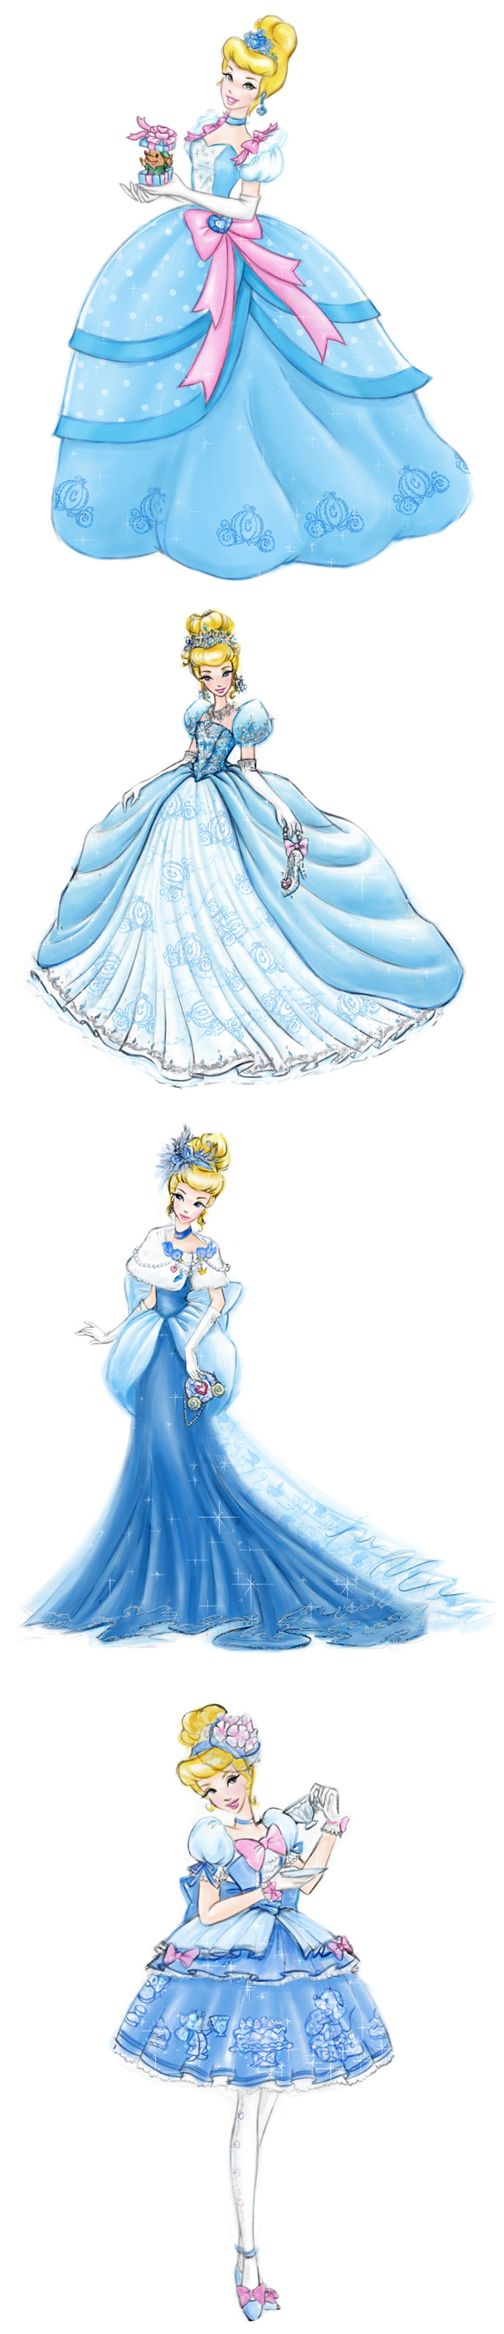 Cinderella dress designs by * Jenny Chung* -- I particularly like the second and fourth designs.